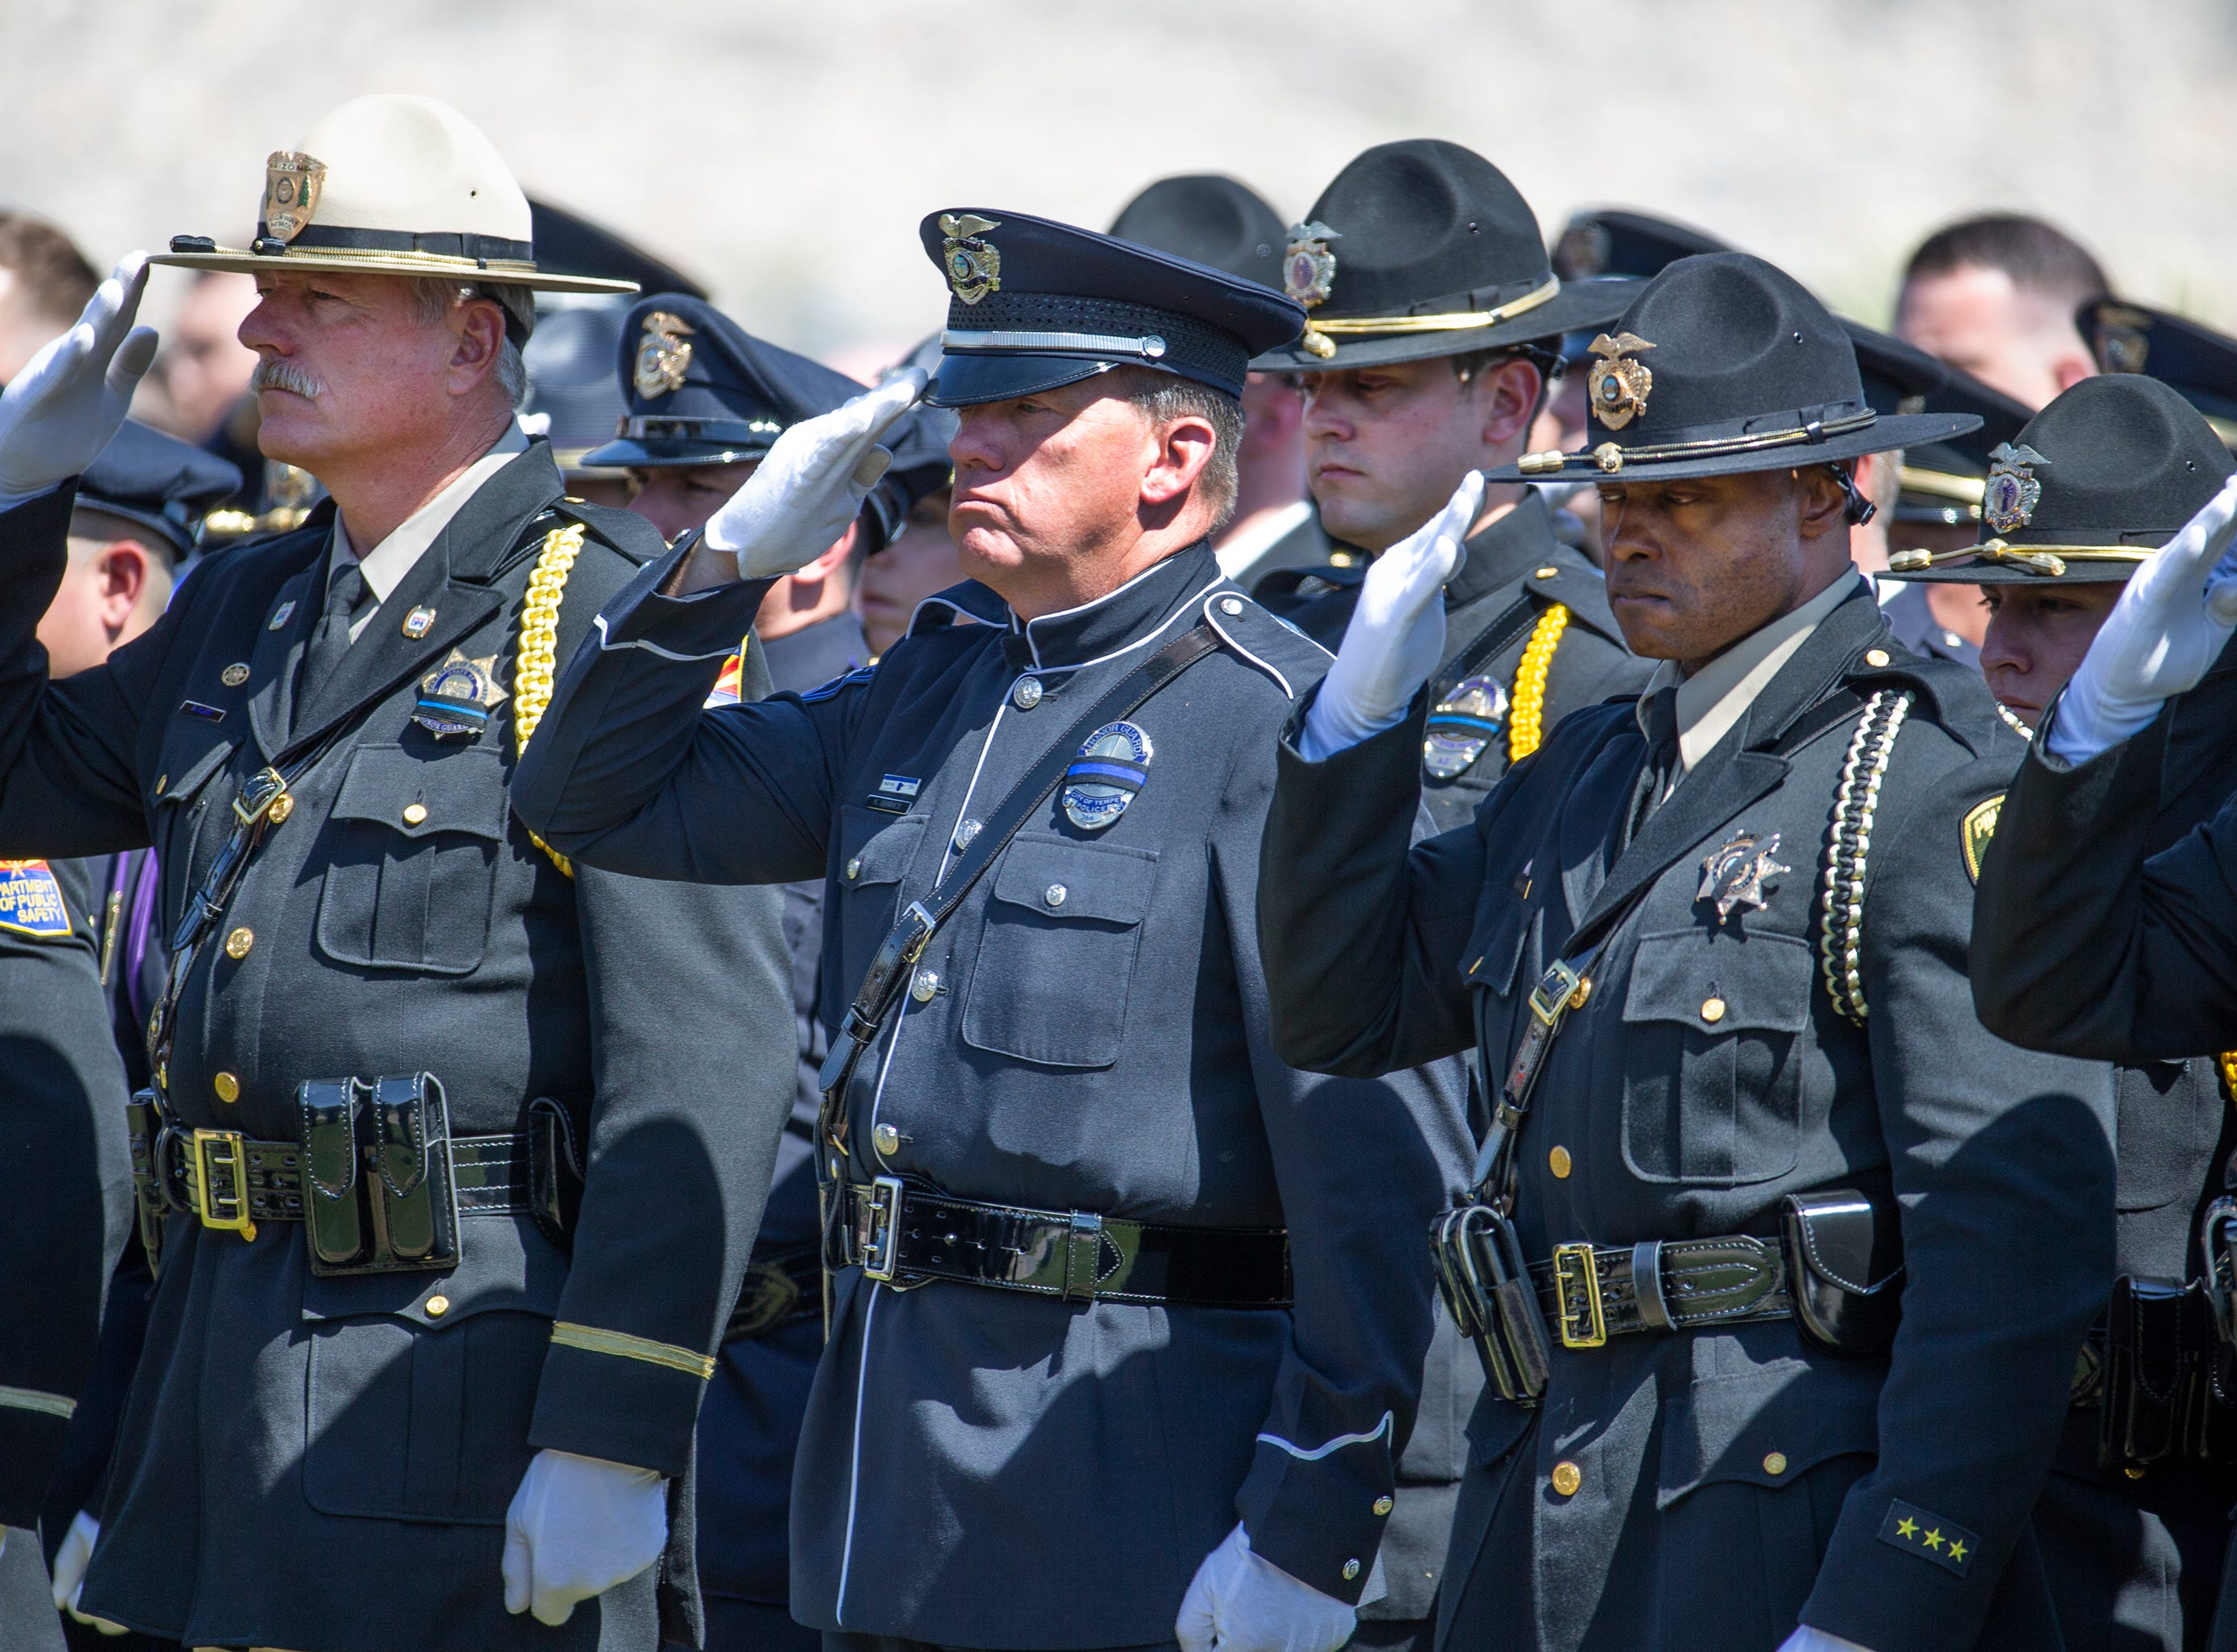 Phoenix police Officer Paul Rutherford is honored by police, firefighters, first responders, family and friends at Phoenix Memorial Cemetery March 28, 2019. Rutherford was killed while investigating the scene of an auto accident in Phoenix.